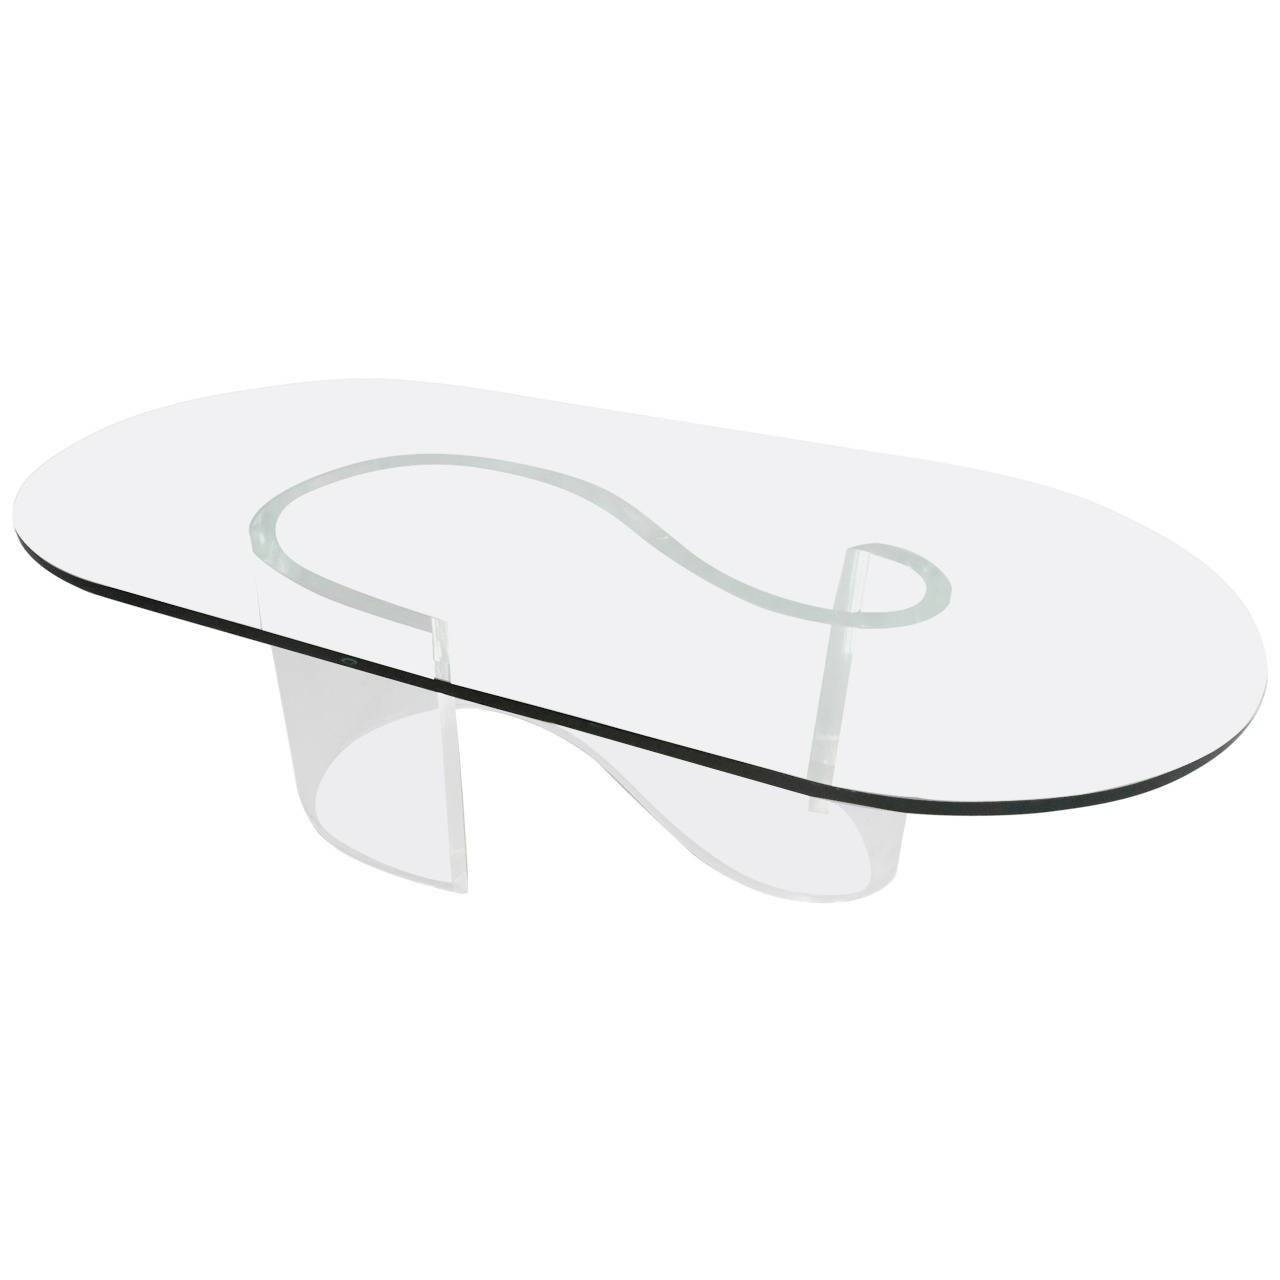 Mid Century Modern S Shape Lucite Coffee Table With Beveled Glass Intended For Coffee Tables With Oval Shape (View 18 of 30)